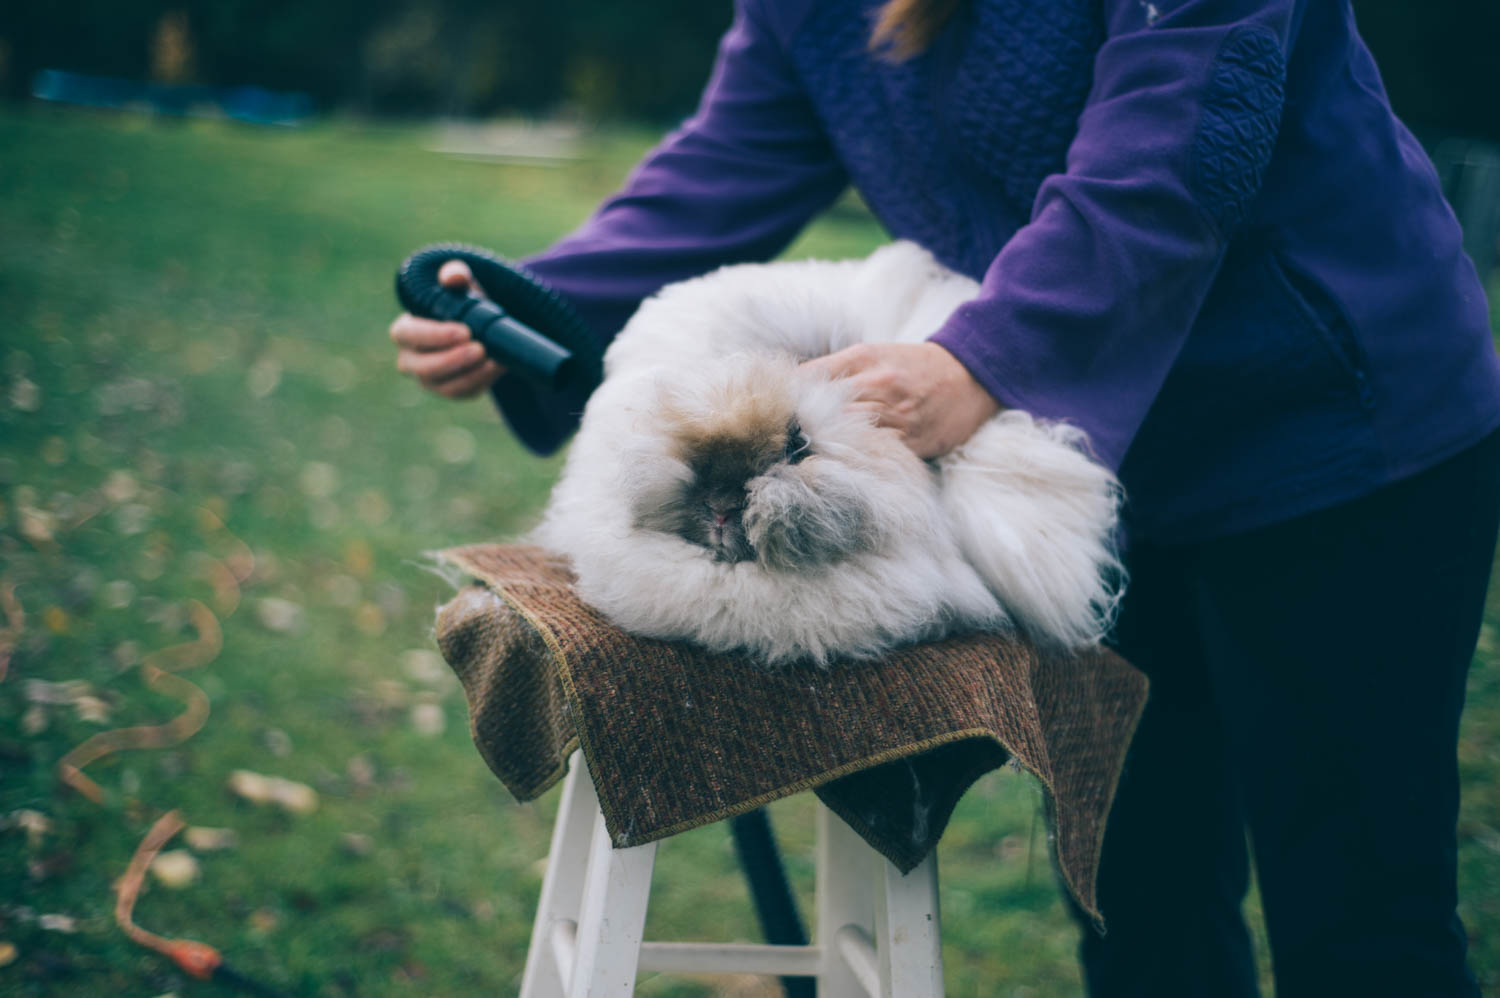 Fluffing the angora rabbit before collecting the hair.